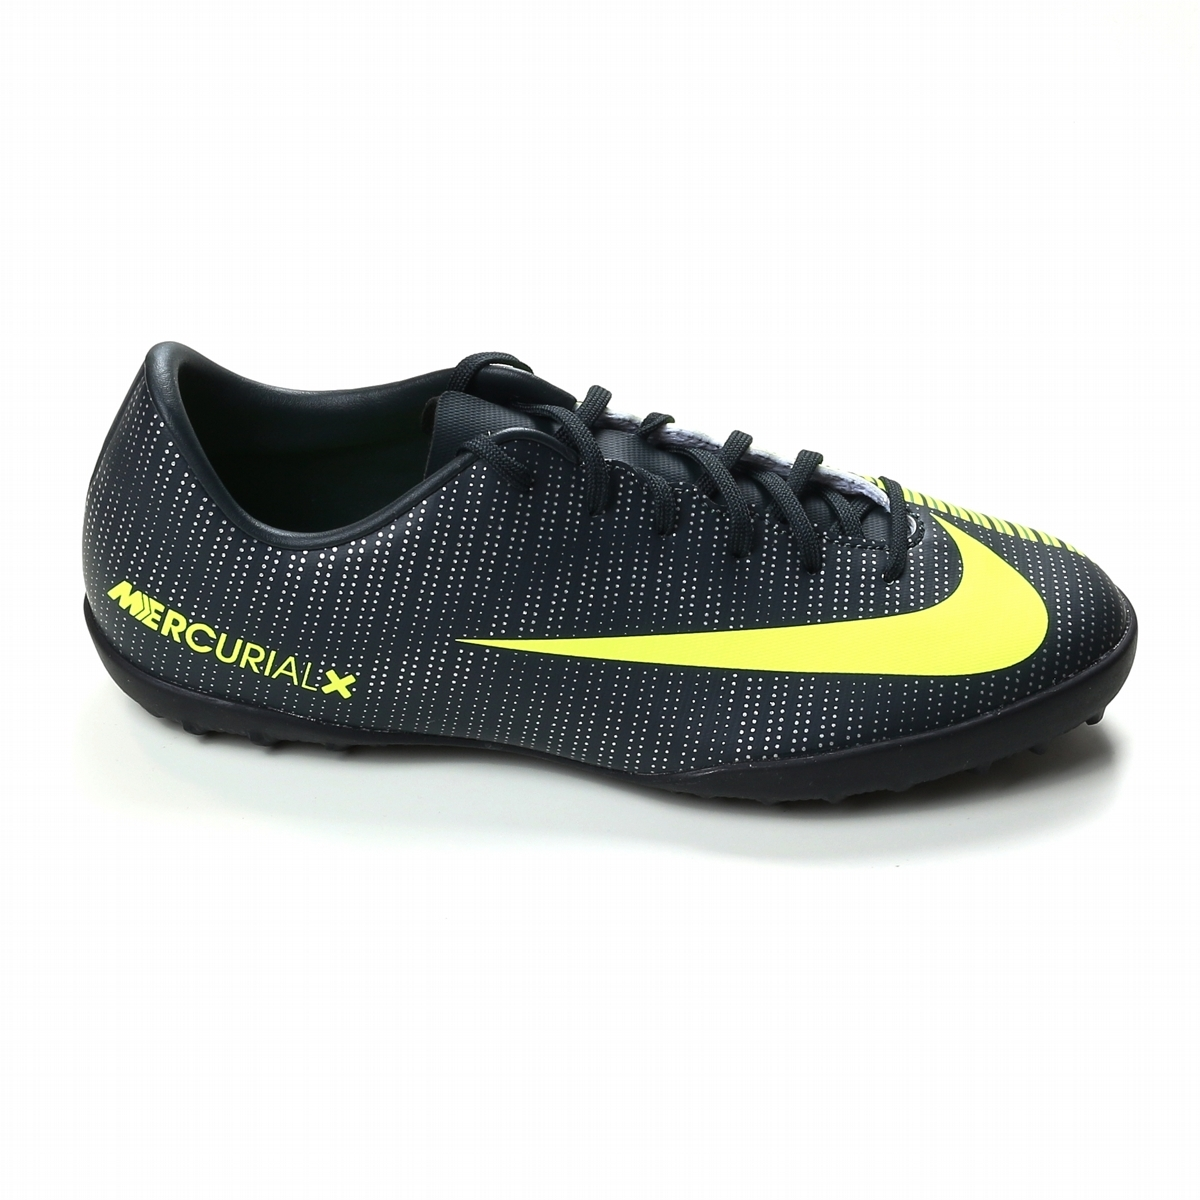 Nike Release Brand New CR7 Mercurial Boot JD Football .